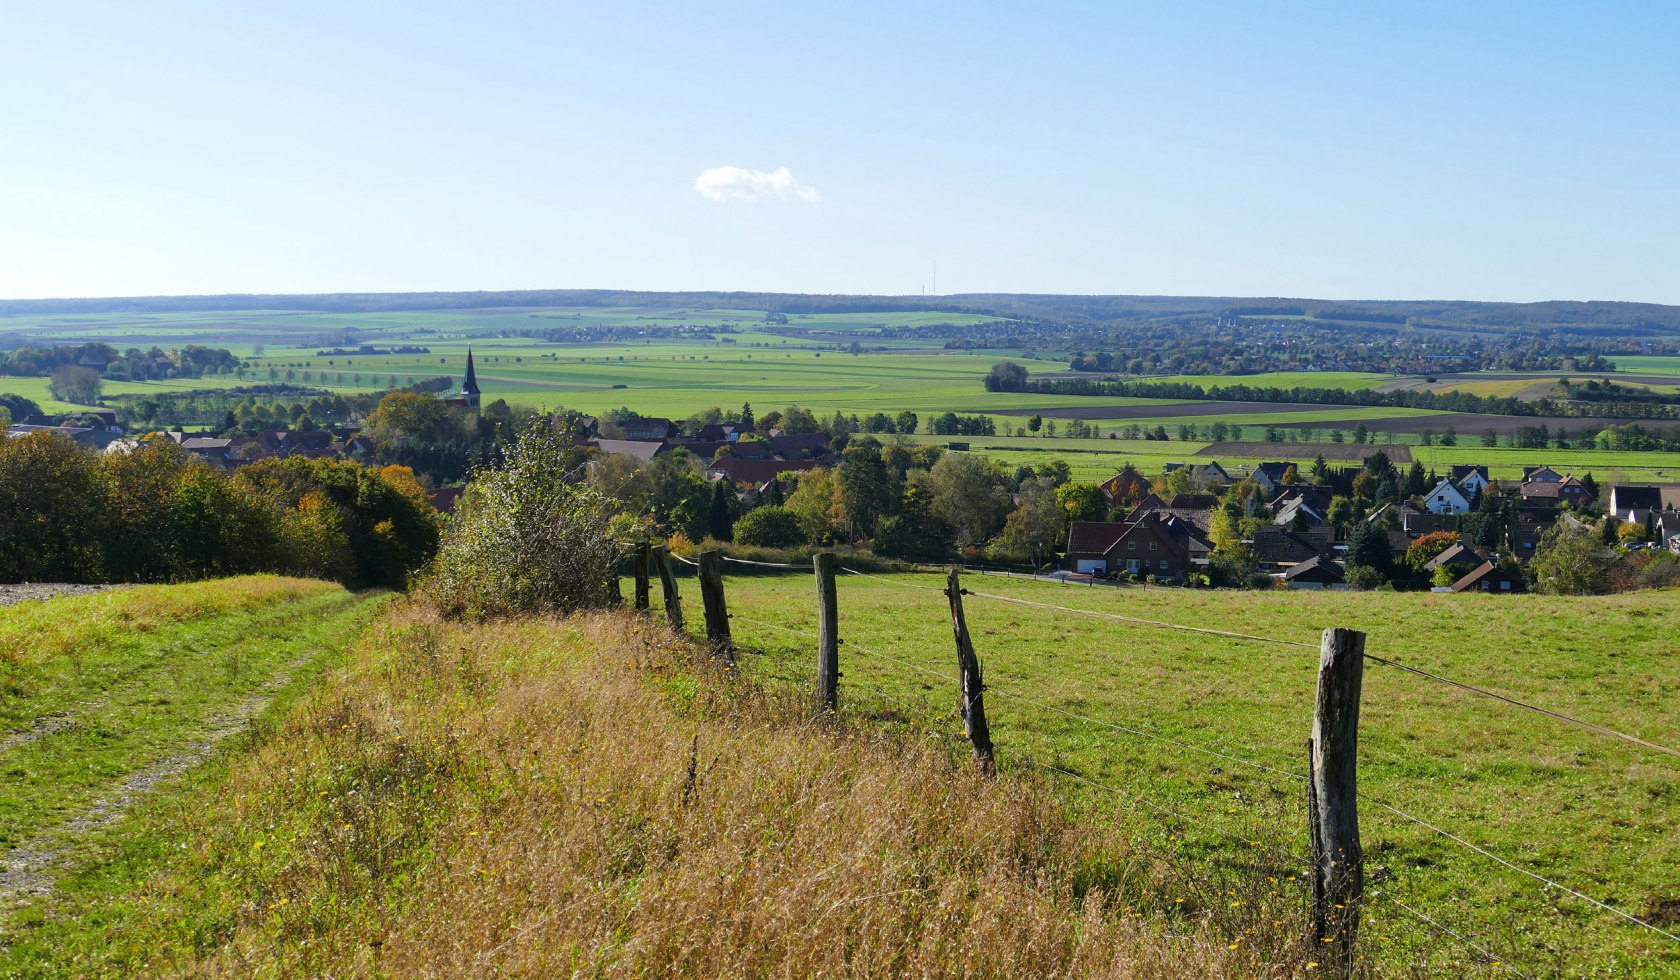 View over the slightly hilly landscape between Dorm and Elm